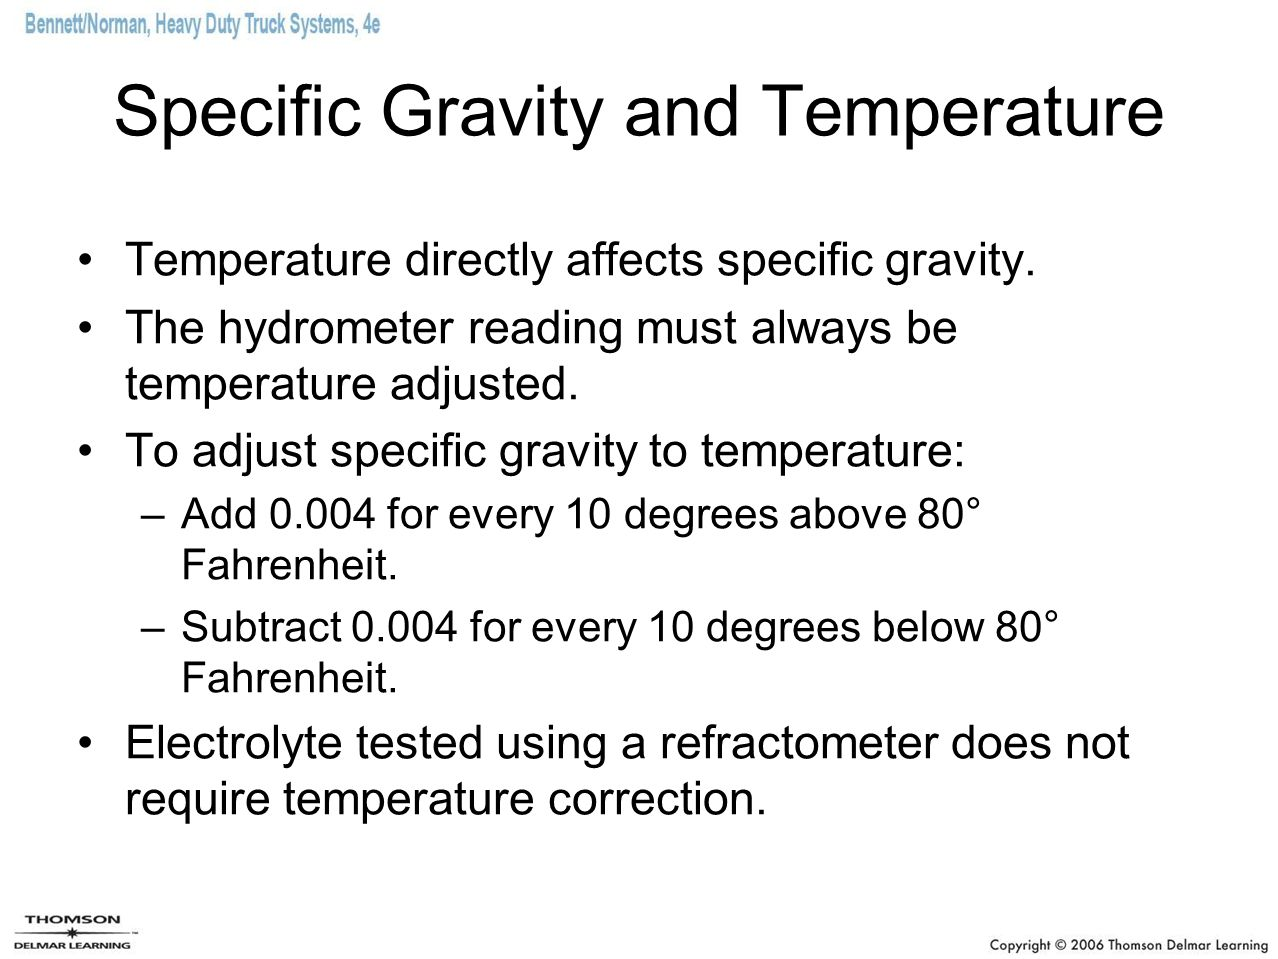 Specific Gravity and Temperature